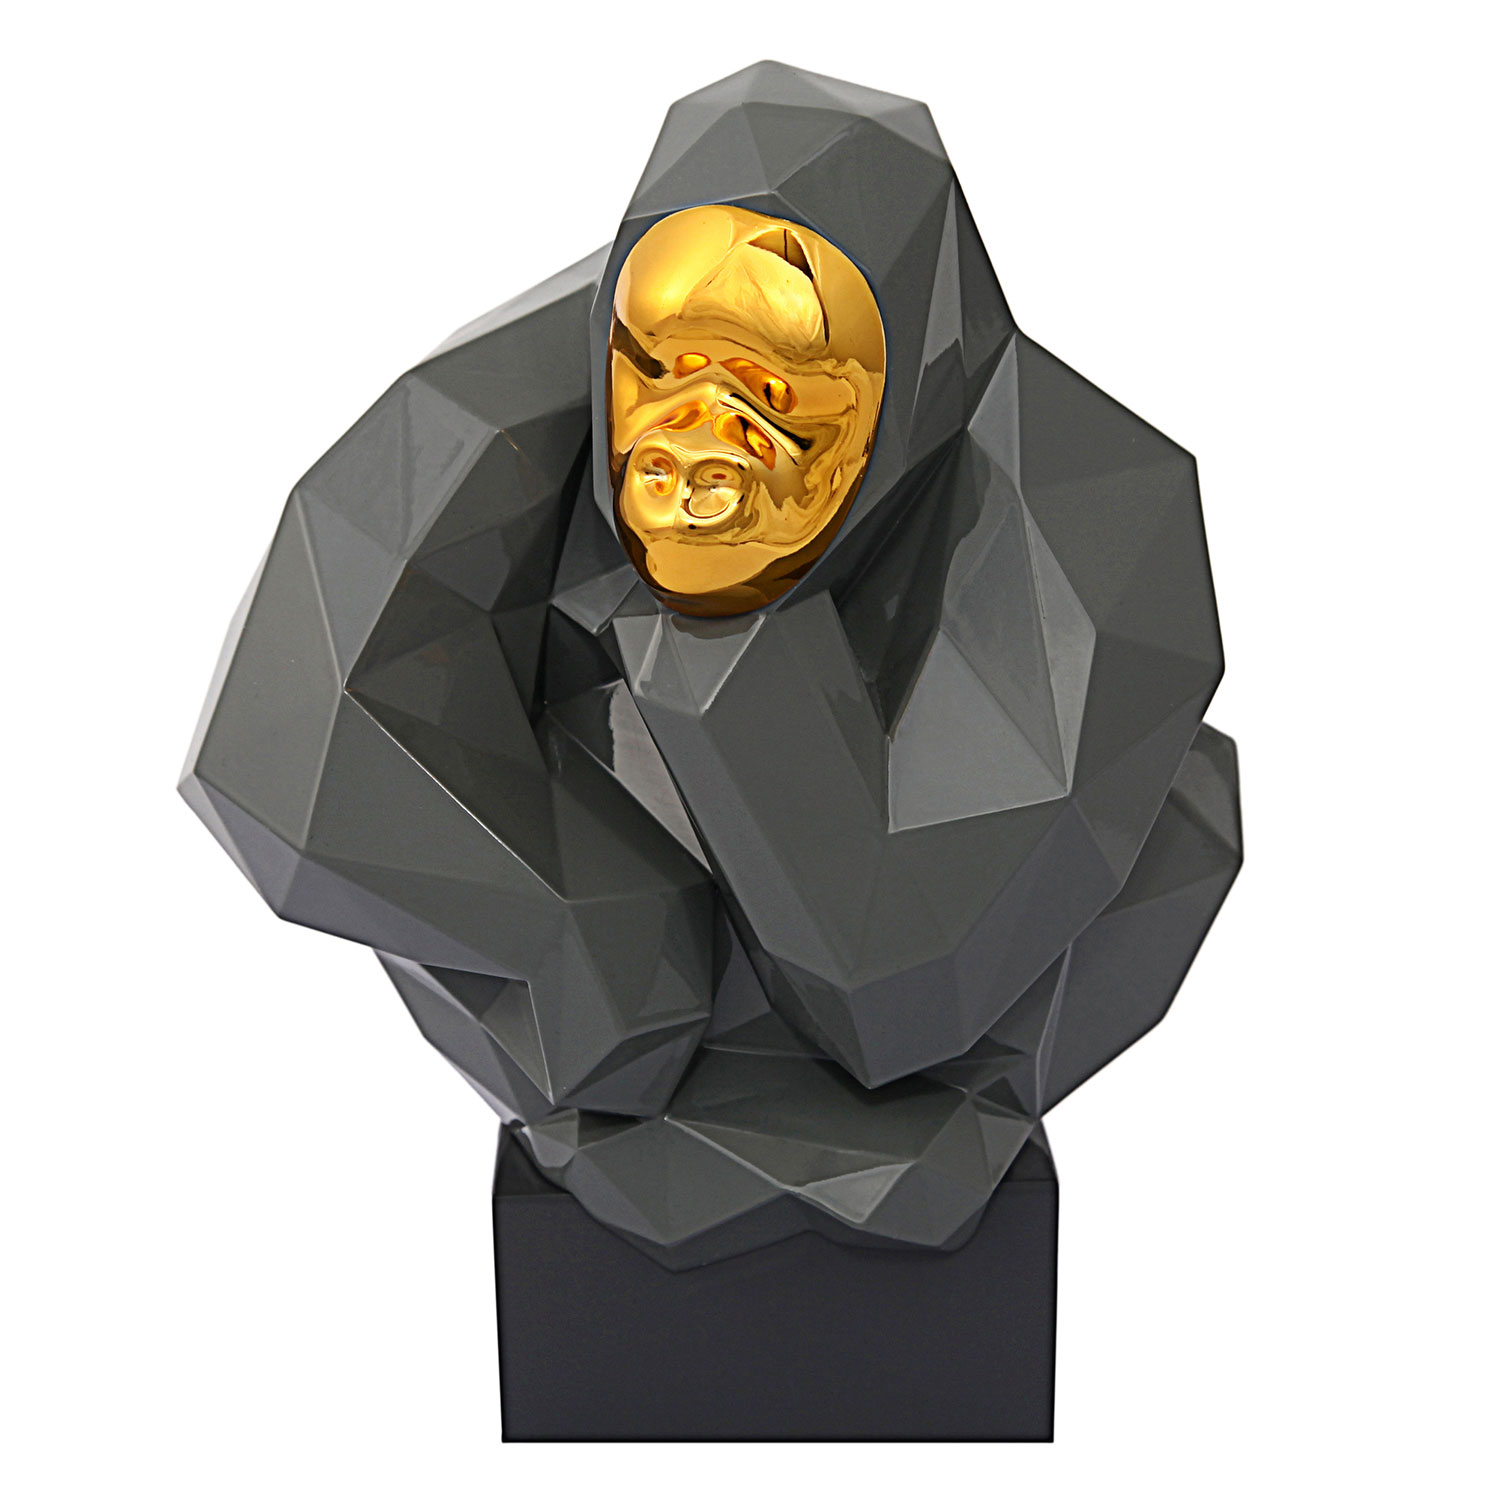 TOV Furniture Pondering Ape Sculpture - Grey/Gold